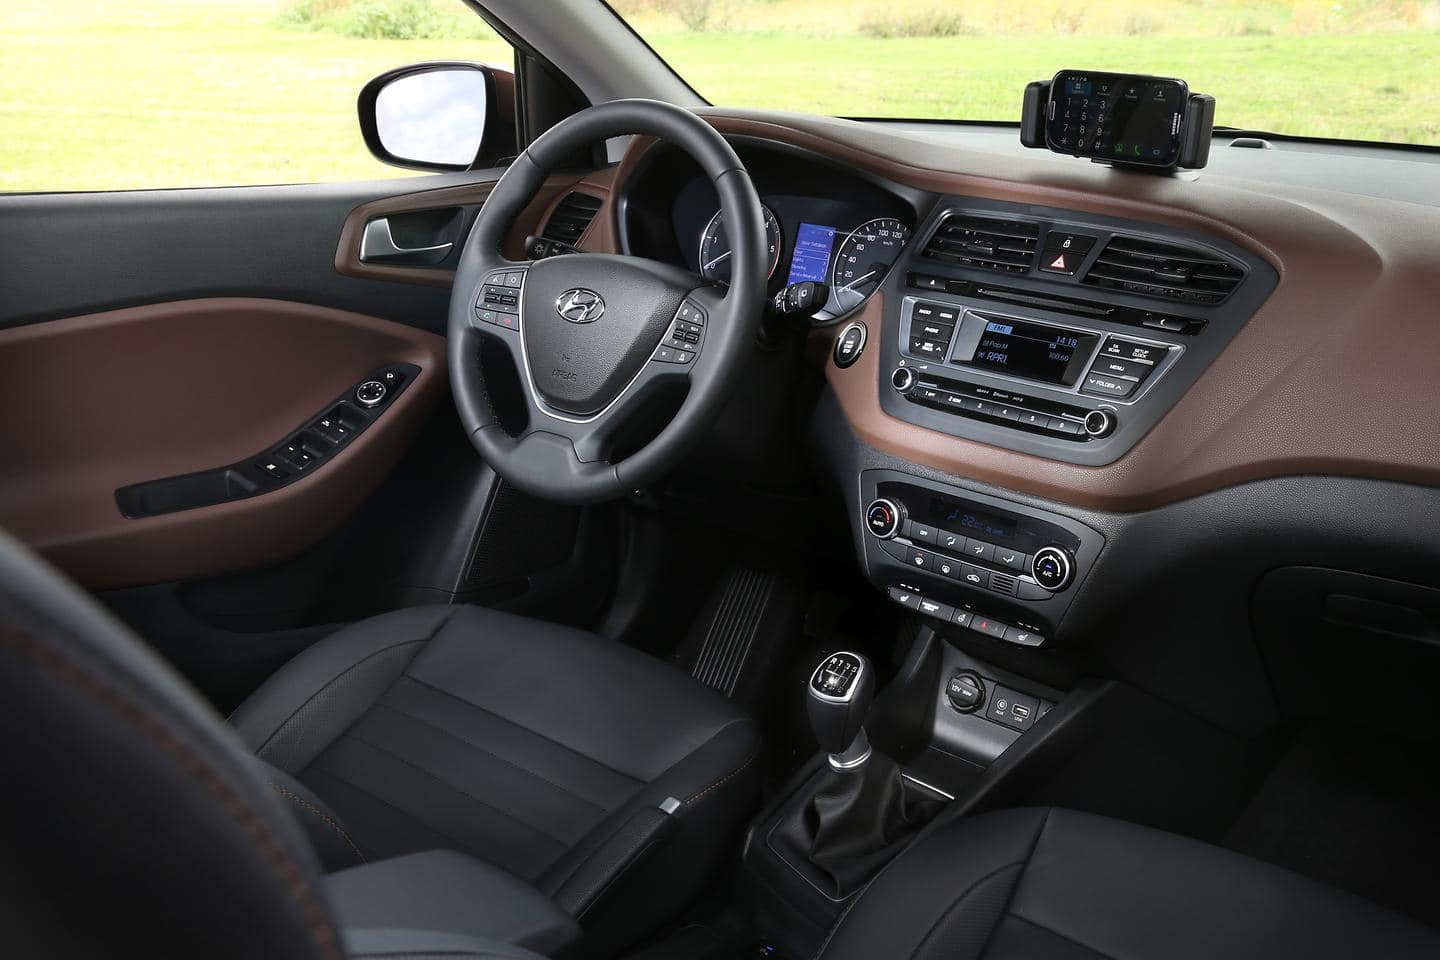 New Generation i20_interior_03